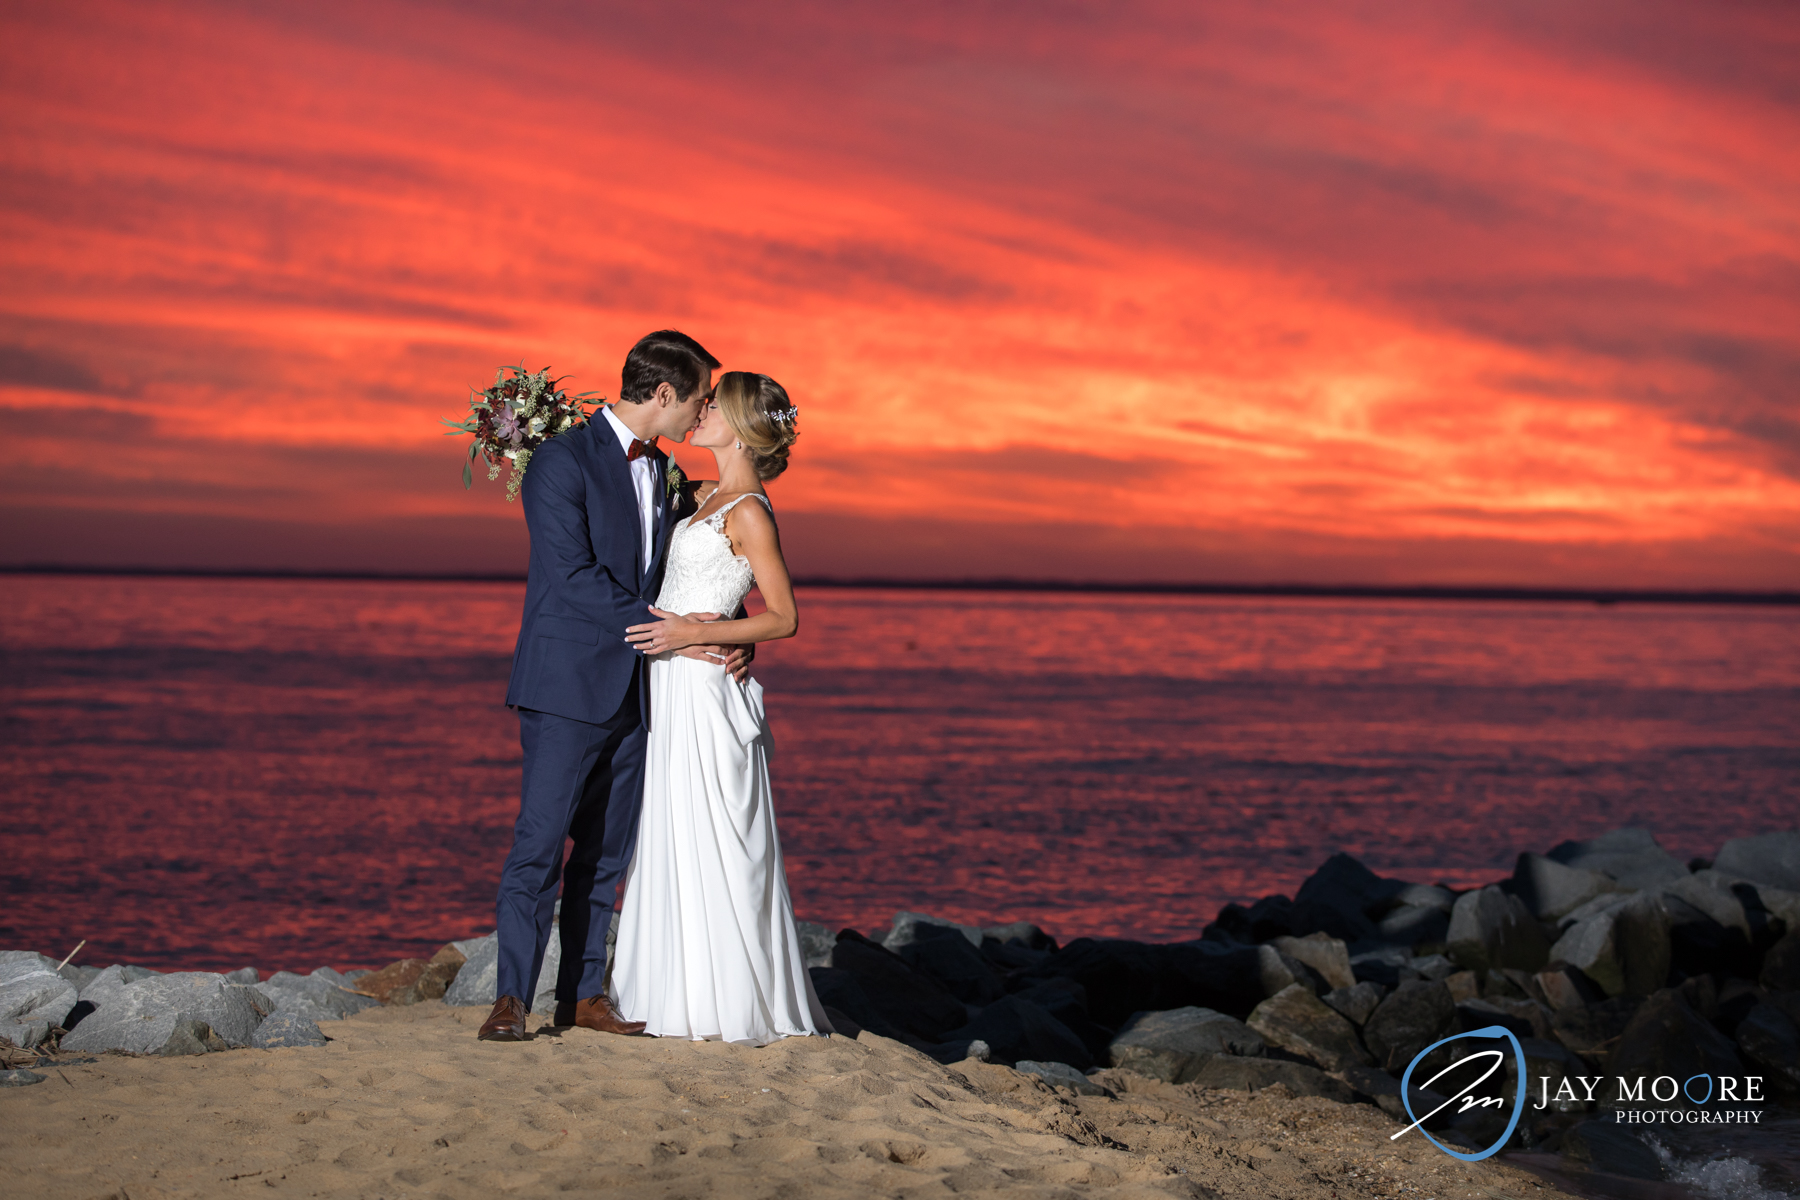 102117 MD Colleen McArdle + Matthew - Jay Moore Photography AF LS_1179.jpg